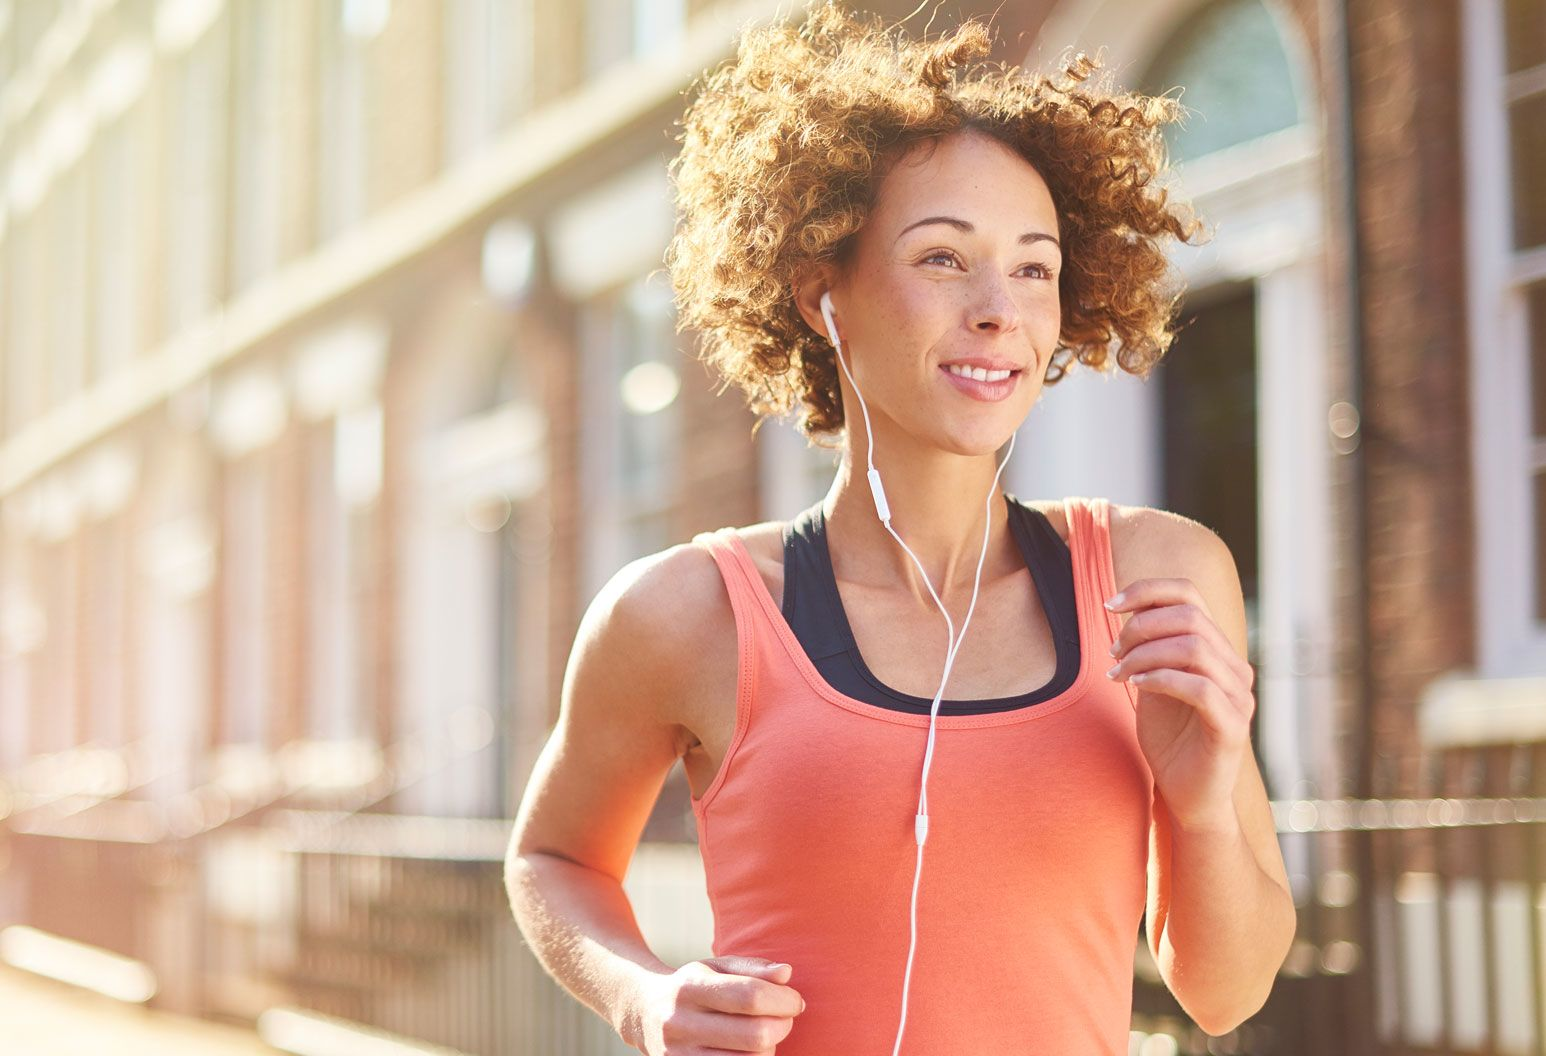 A woman jogs outside on a nice day. She wears a bright tank top and headphones.